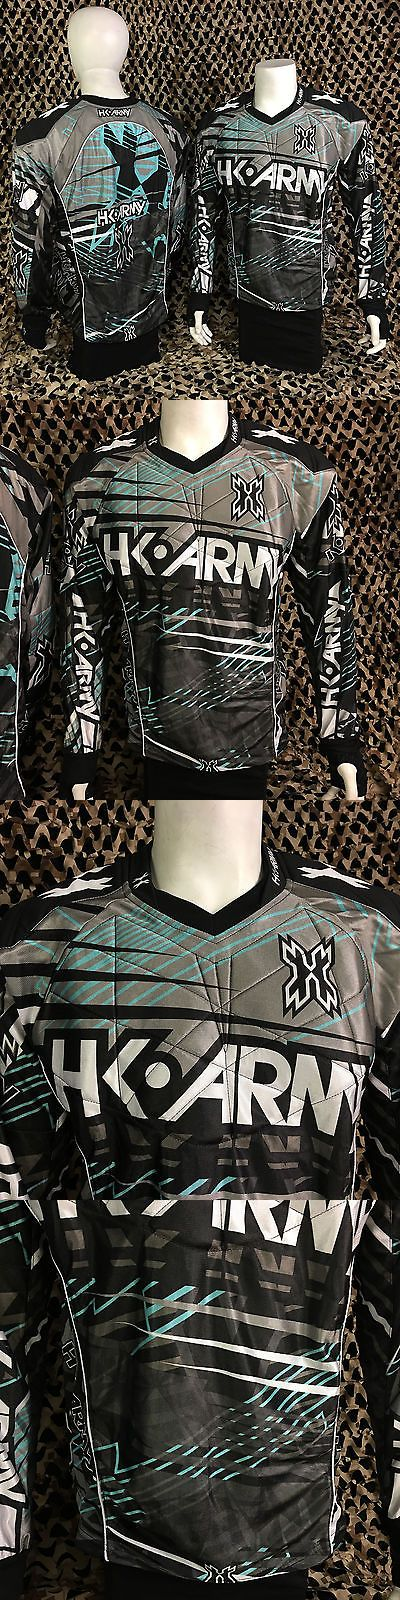 Jerseys and Shirts 165939: New Hk Army Hardline Padded Tournament Paintball Jersey - Atomic BUY IT NOW ONLY: $89.95